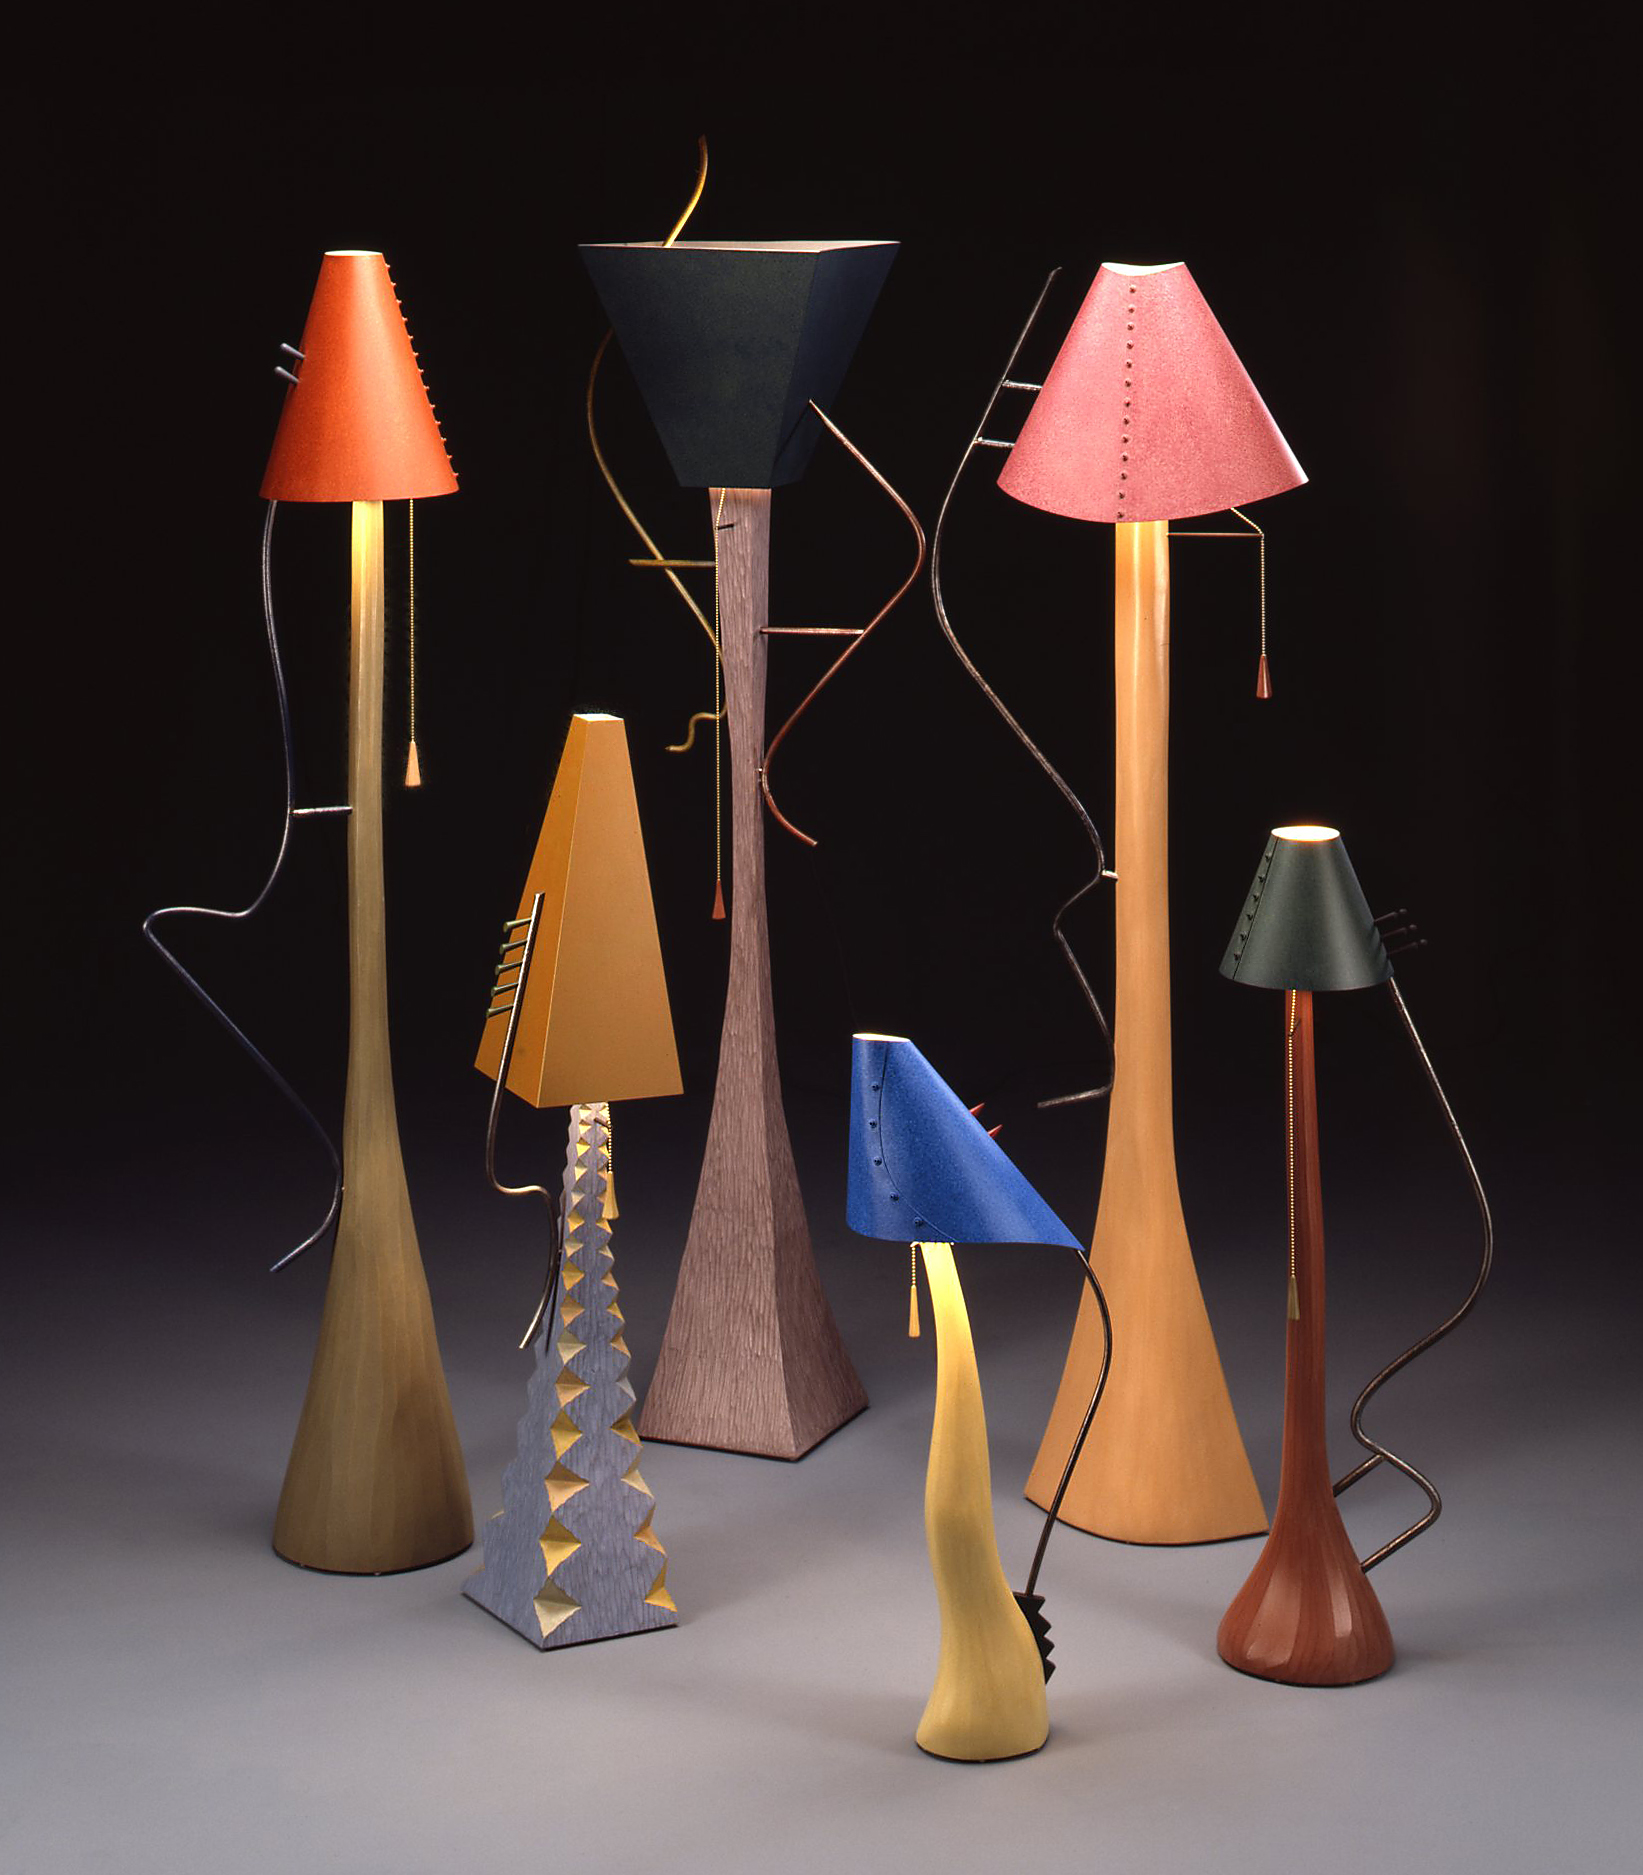 Lamps: (left to right) Enid, Barney, Bertha, Lulubell, Petunia, Chester I Tom Loeser and Charles Crowley I 1987 I wood, steel, aluminum, paint